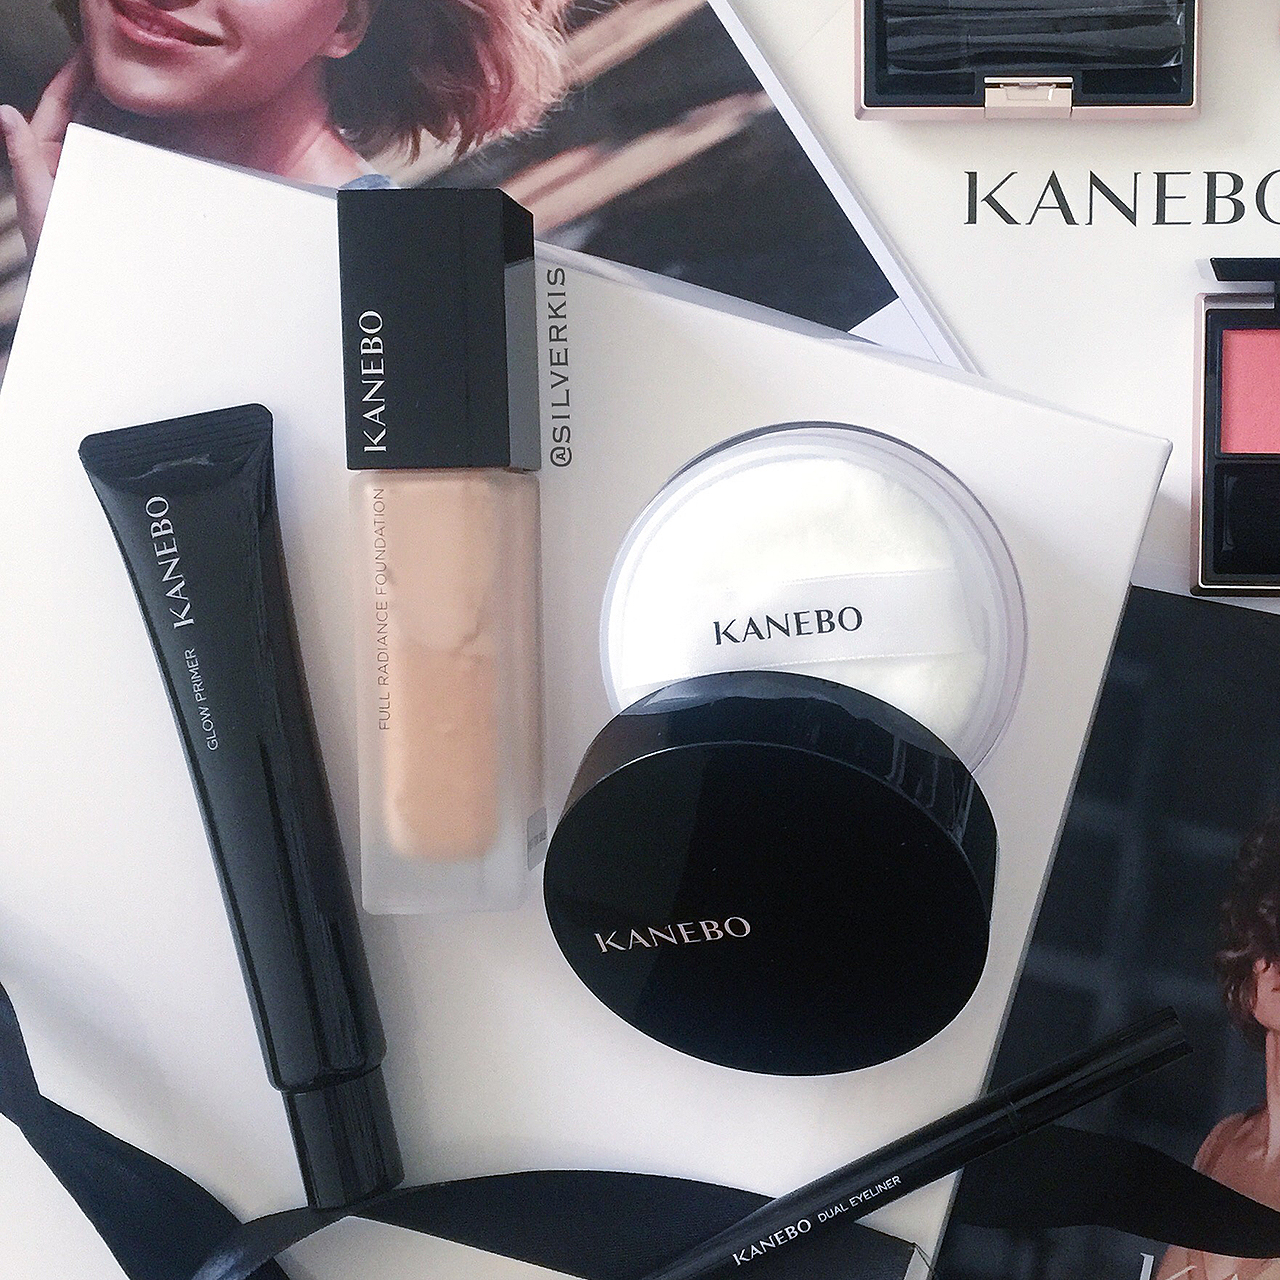 Kanebo Full Radiance Foundation